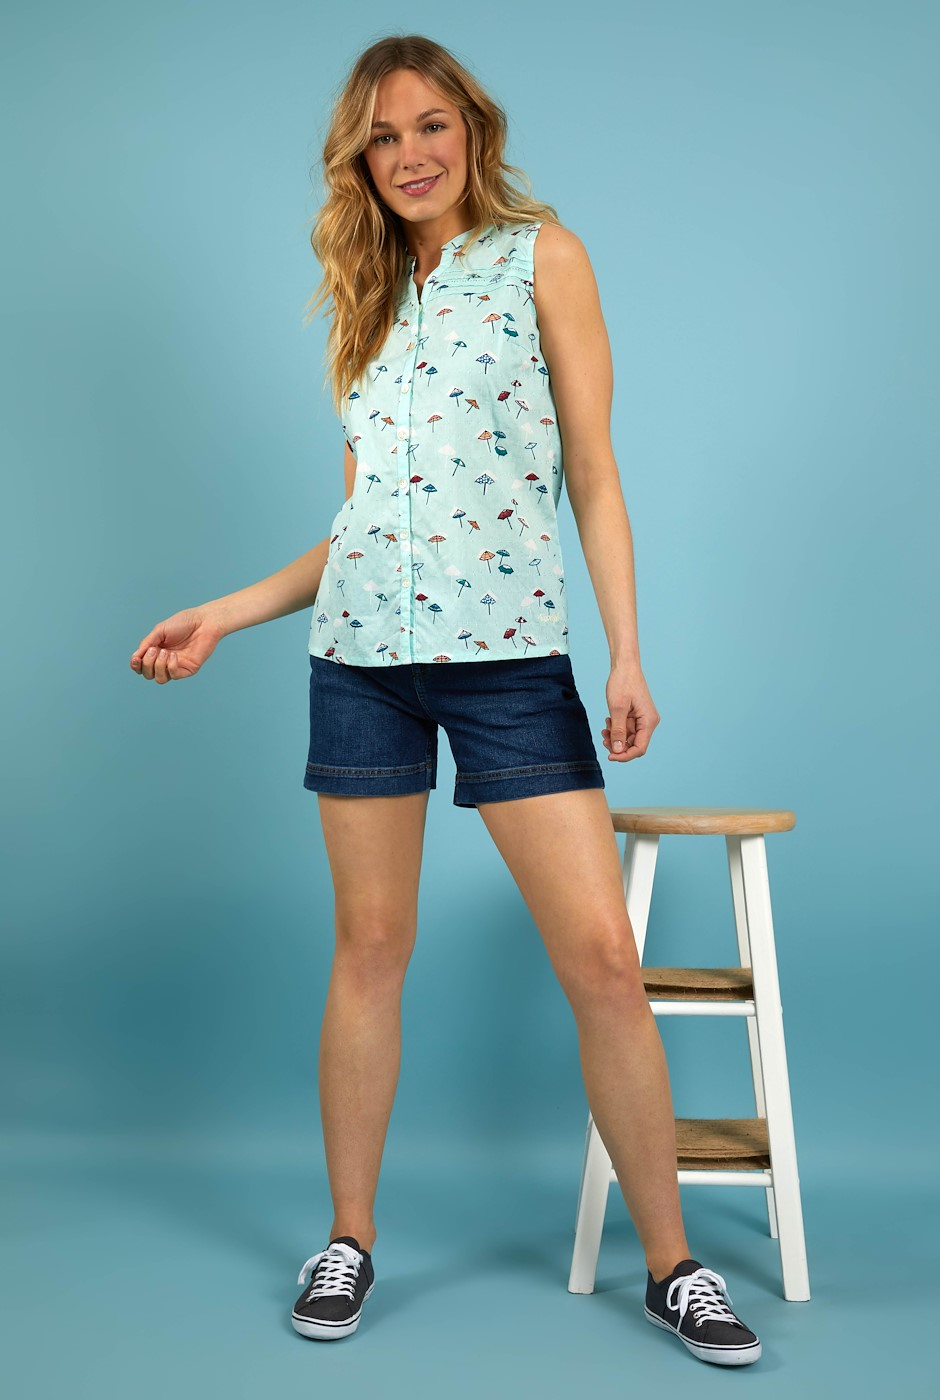 Lazio Organic Cotton Printed Sleeveless Shirt Seafoam